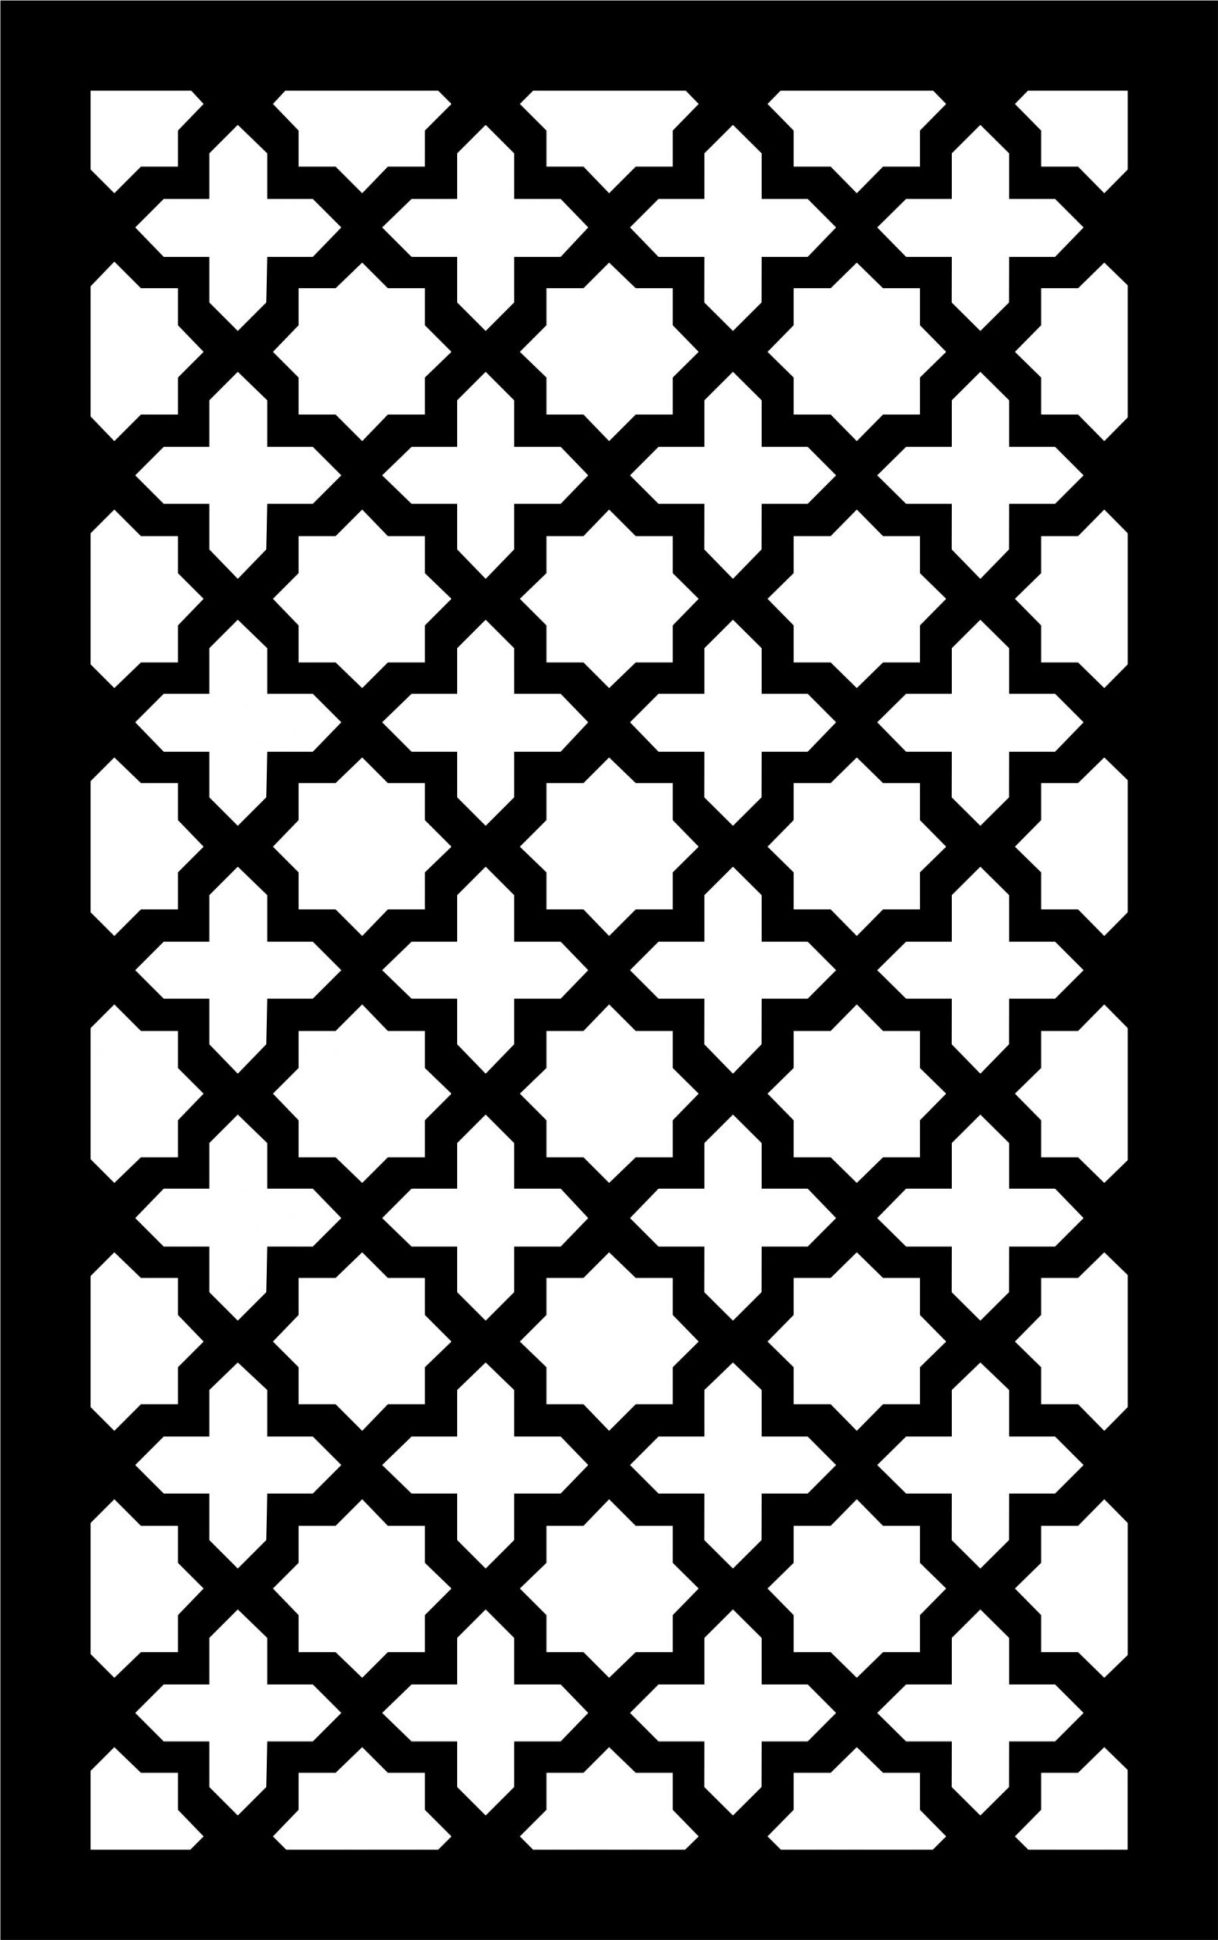 Decorative Screen Patterns For Laser Cutting 28 Free DXF File